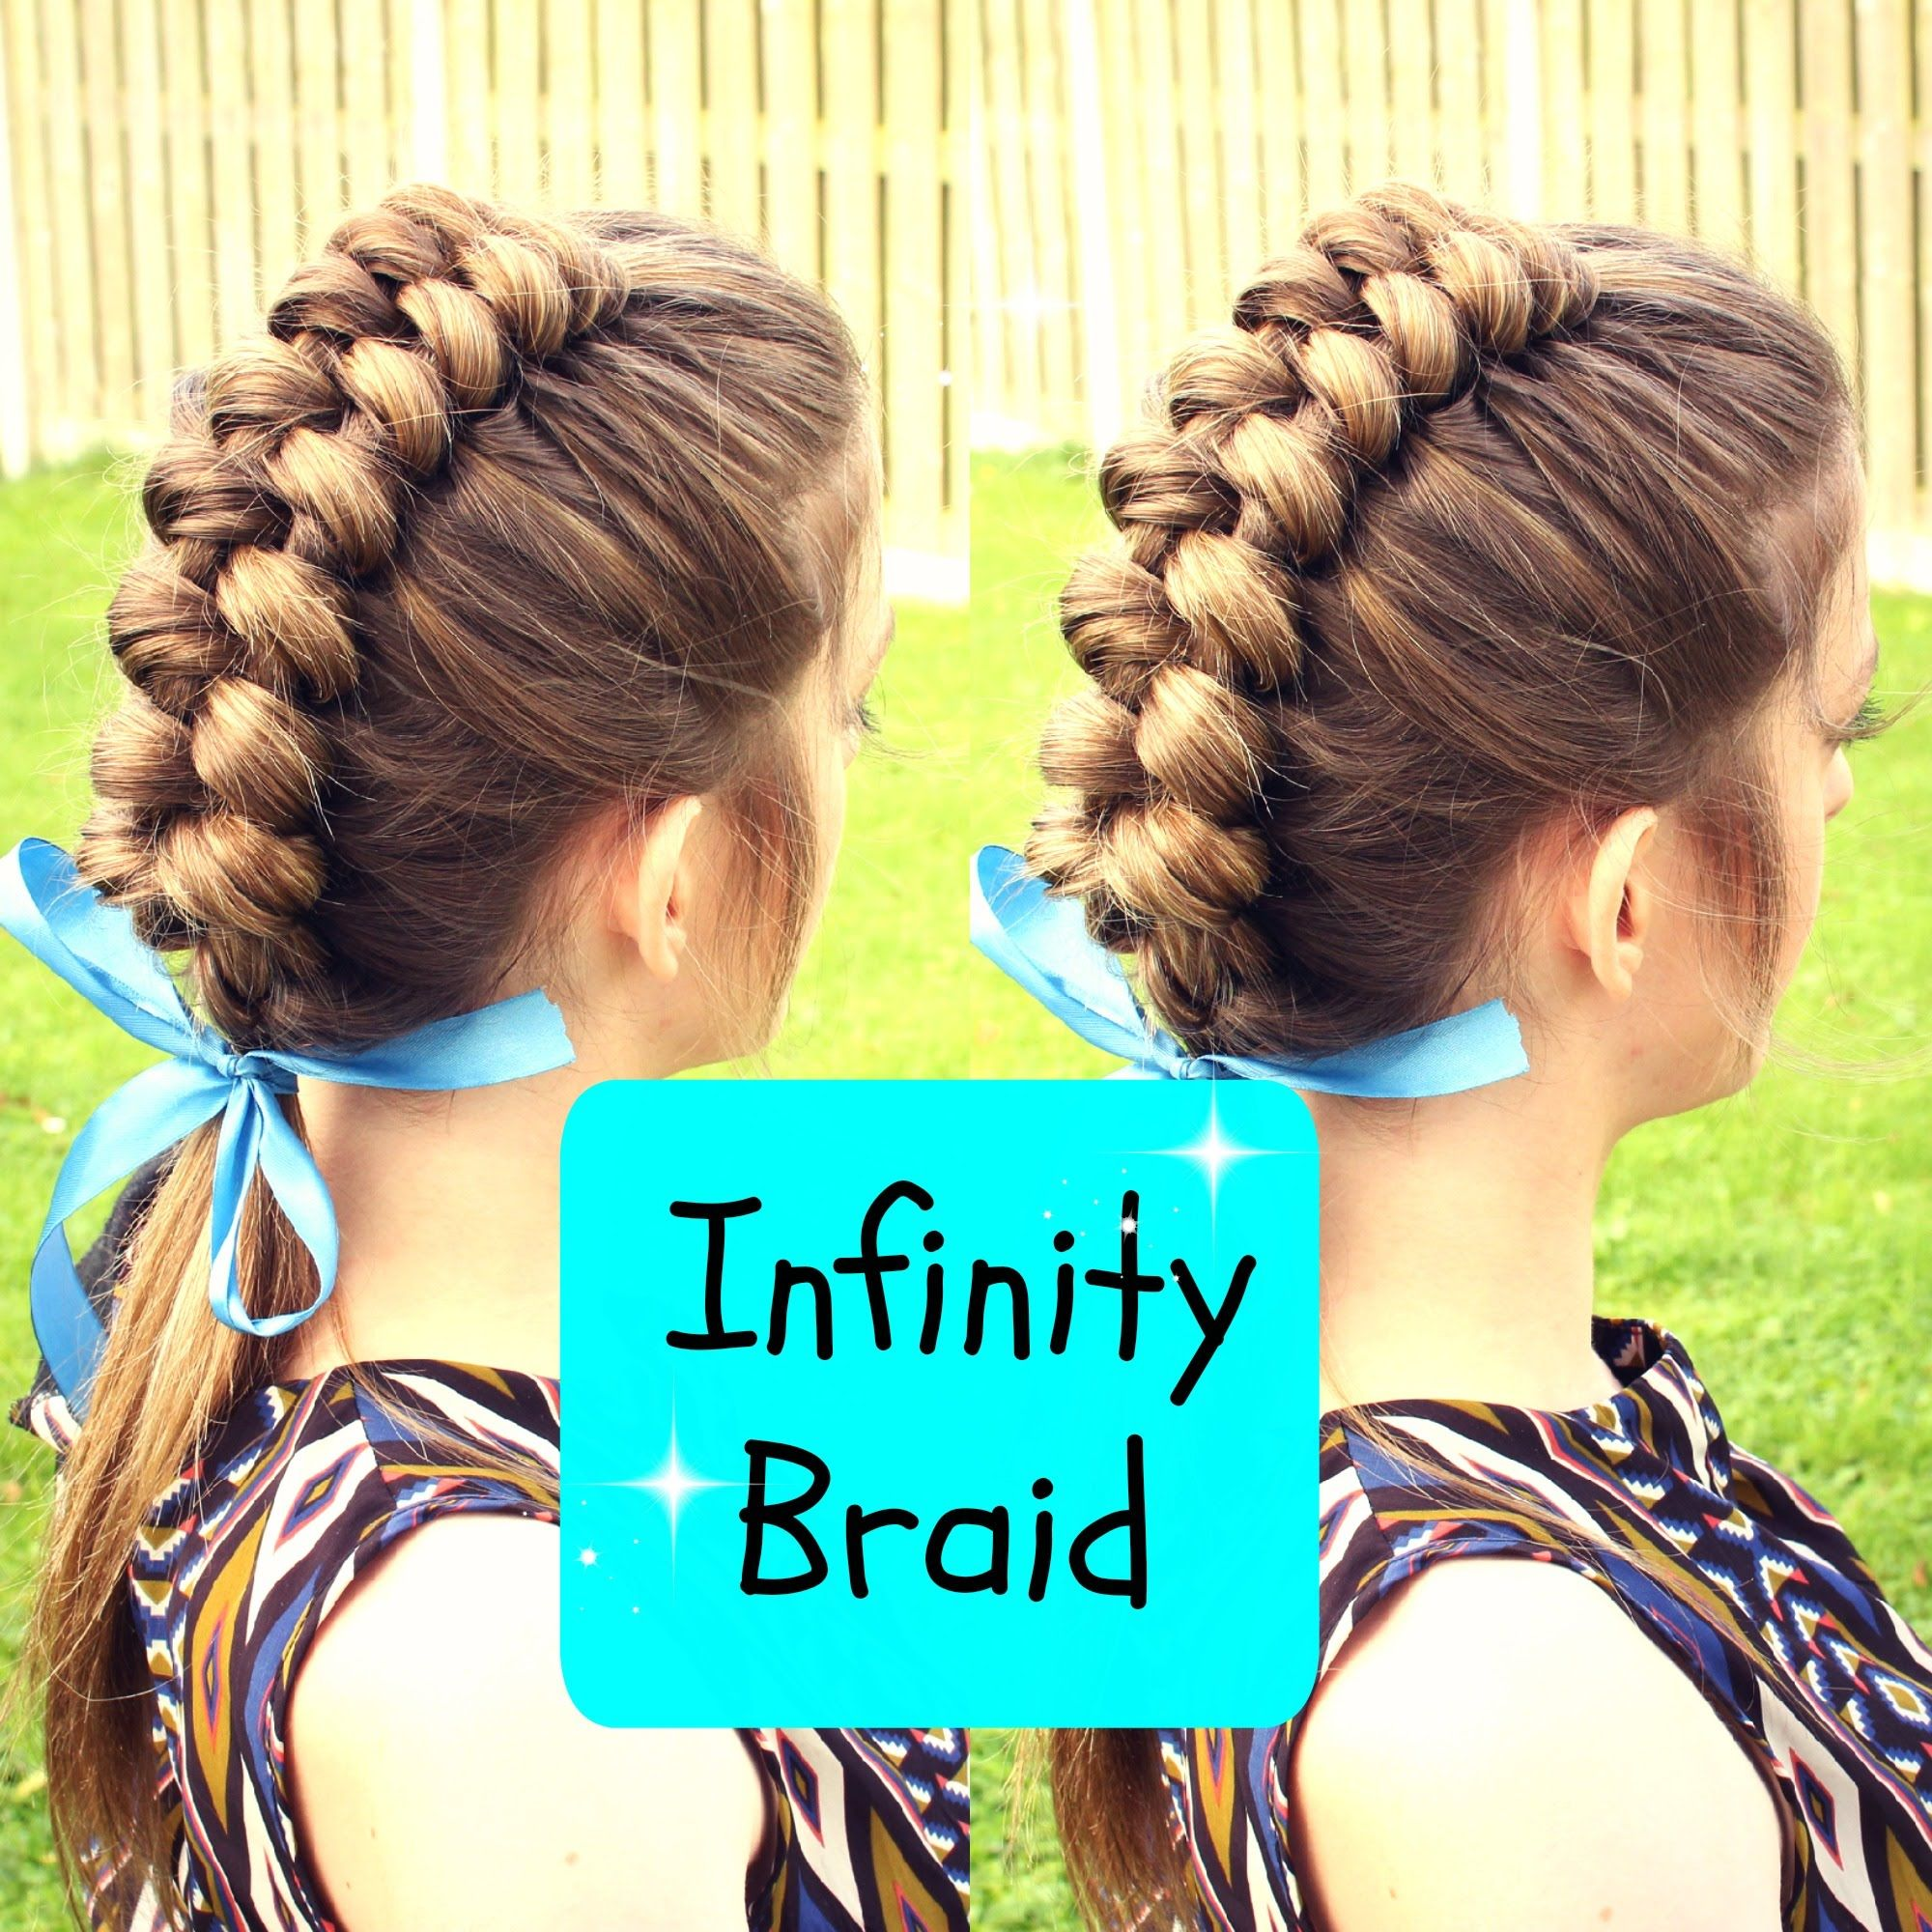 Dutch infinity braid dutch braid how to my channel for more